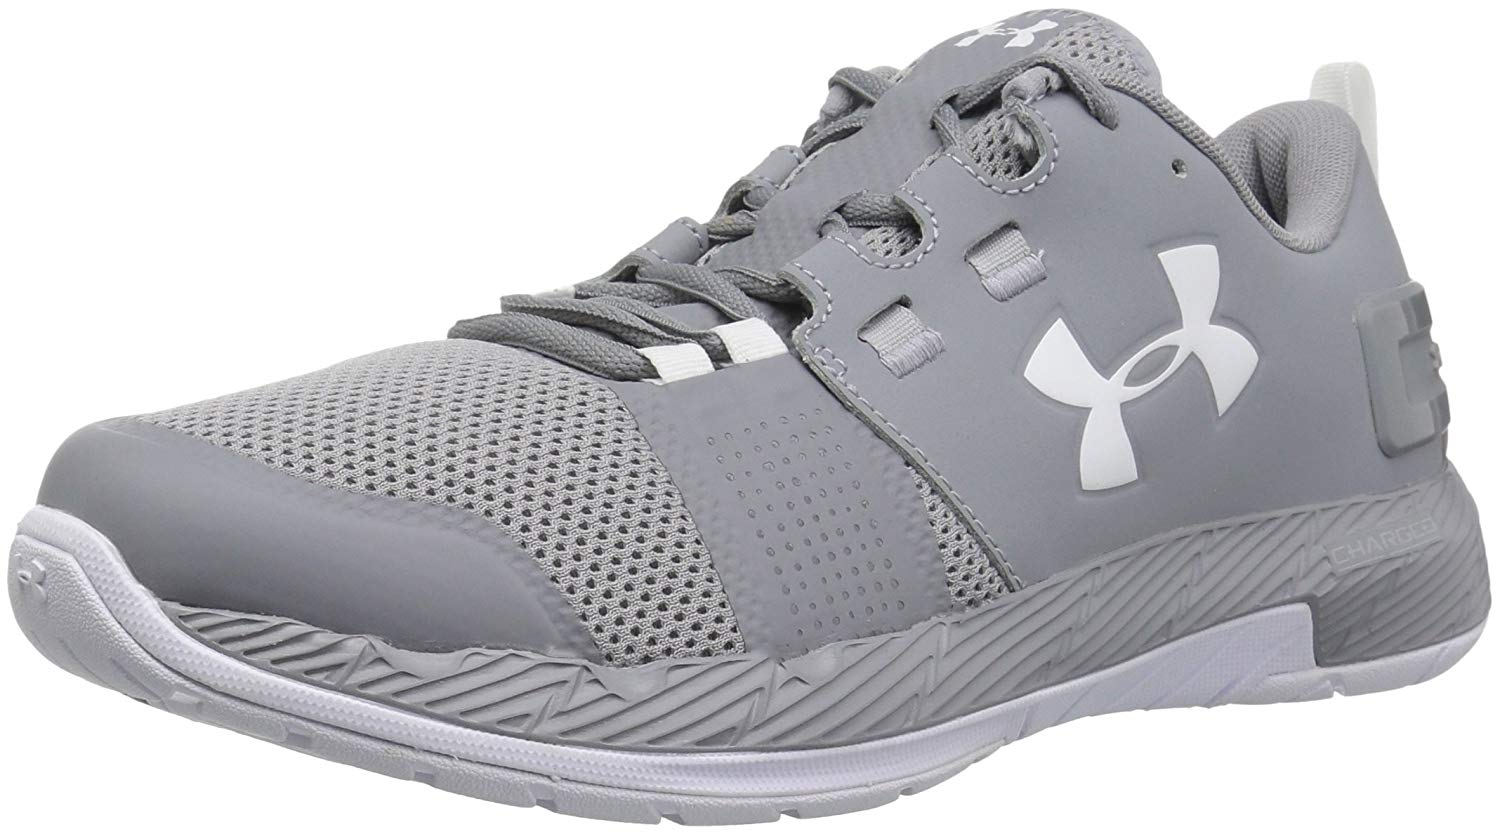 fdbc4827 Details about Under Armour Men's Commit Tr X Nm Sneaker, Steel (101)/White,  Size 8.5 JHz1